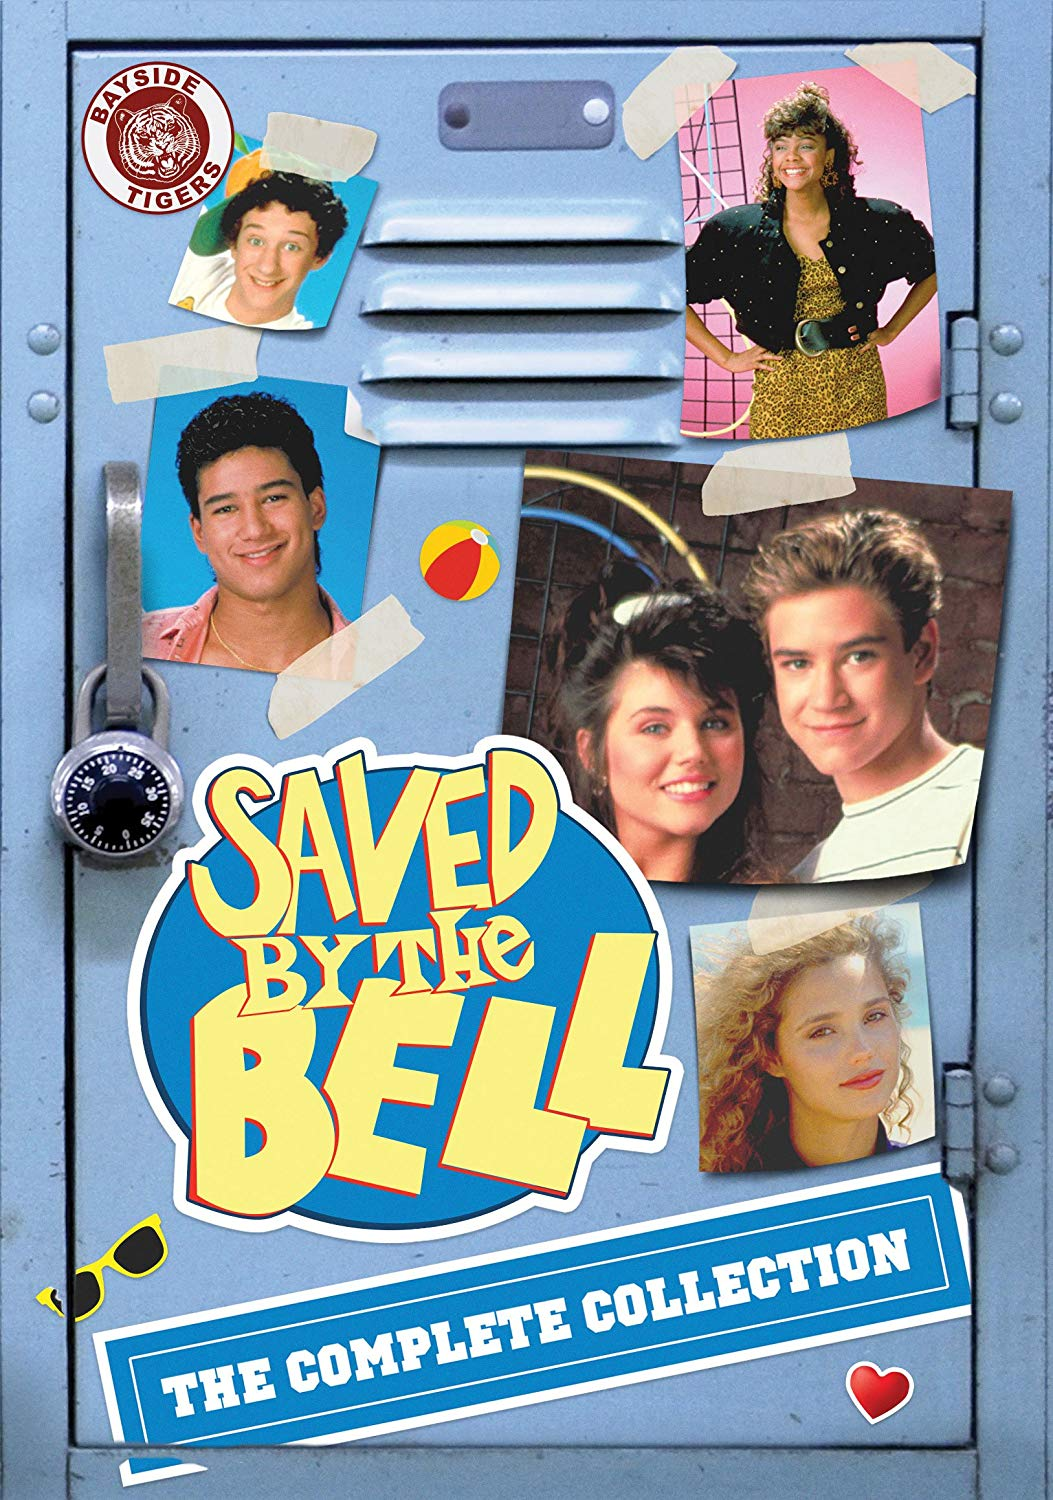 Aficionados Chris 187 Saved By The Bell The Complete